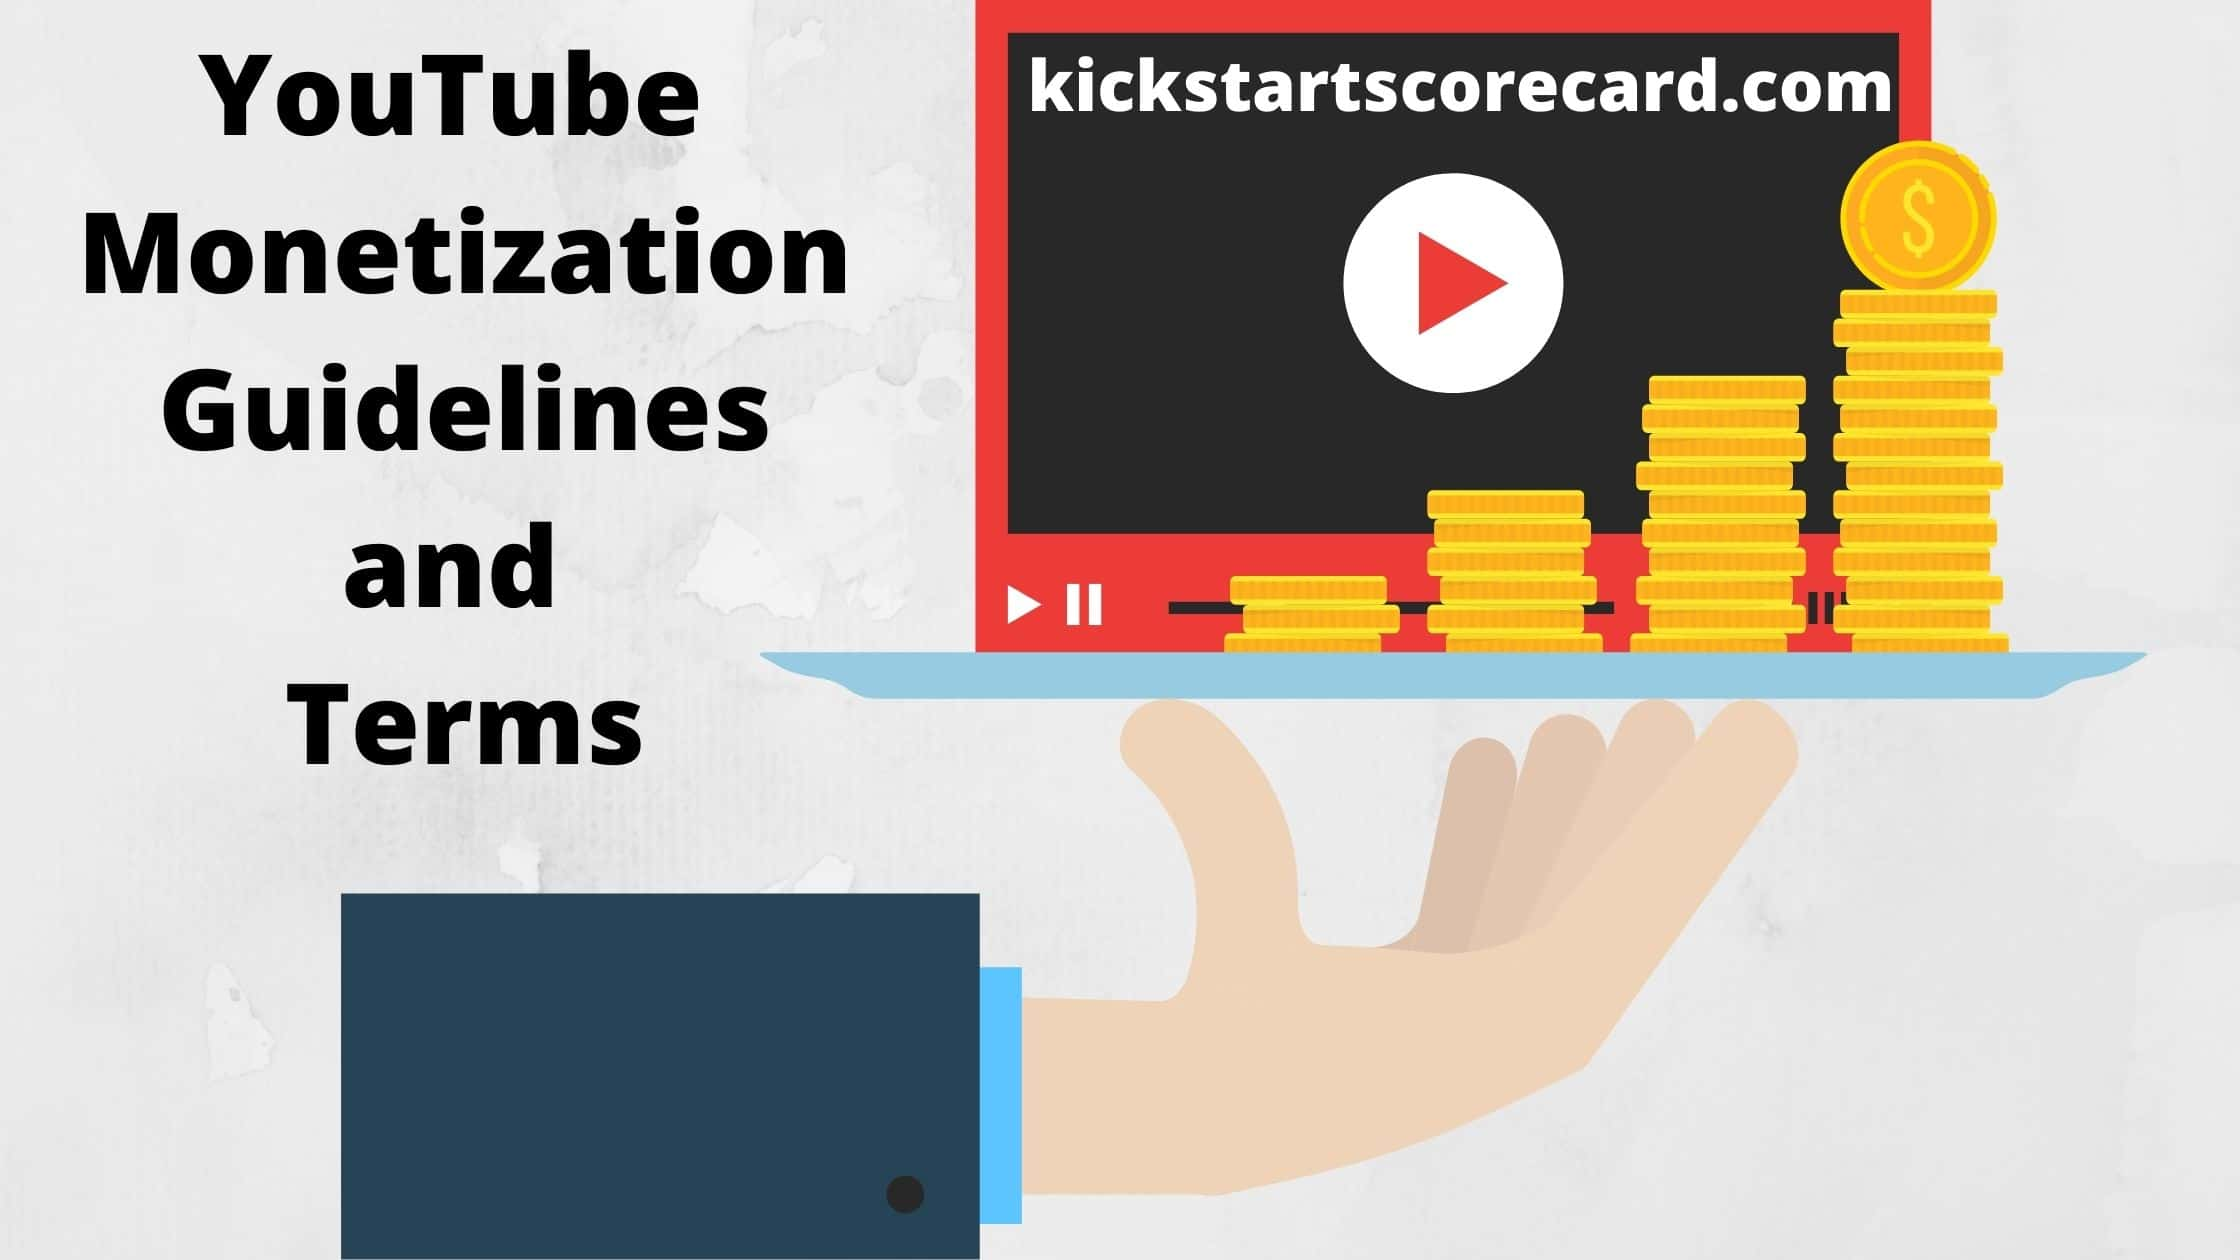 youtube monetization guidelines